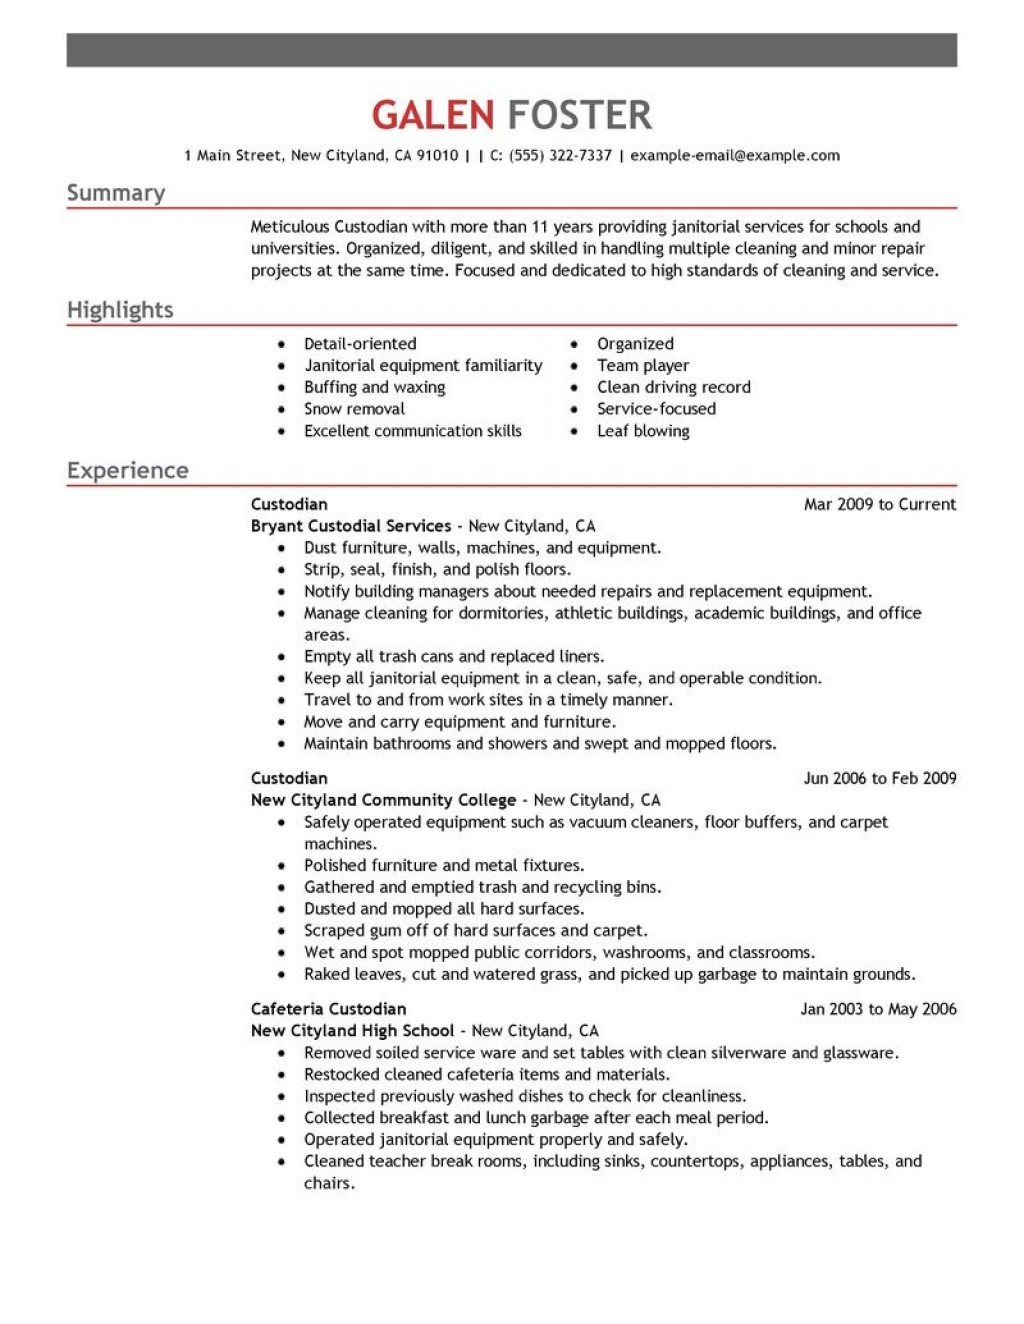 026 Strengths And Weaknesses Essay Cleaning Professionals Maintenance Janitorial Emphasis Impressive Examples Mba For Introduction Large